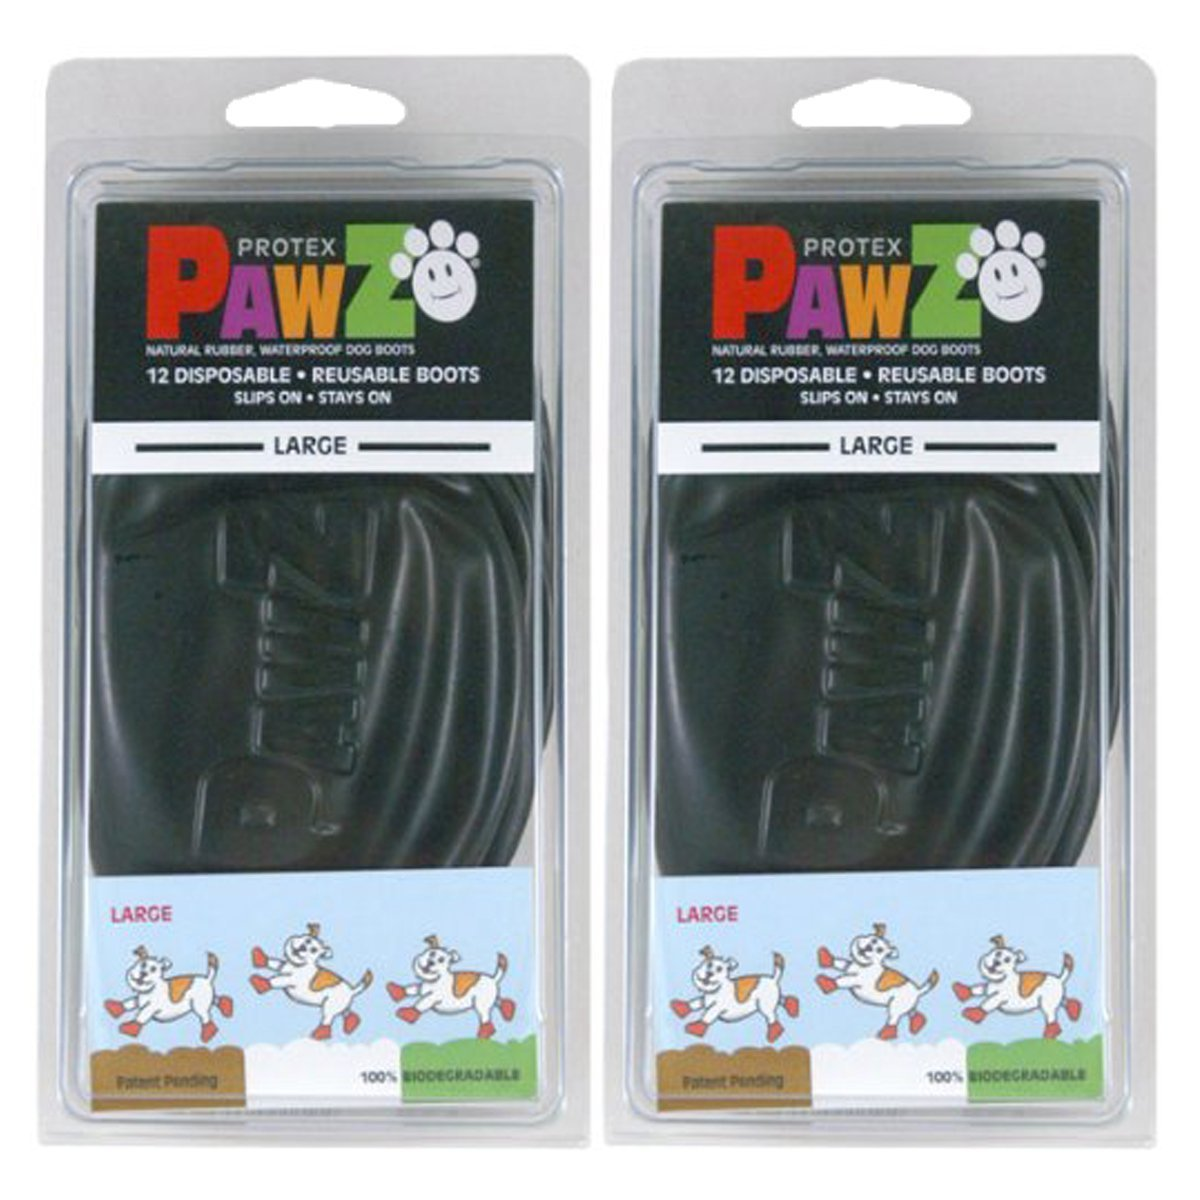 Black Large Pack of 2 Black Large Pack of 2 Pawz Water-Proof Dog Boot, Black, Large (2 Pack)